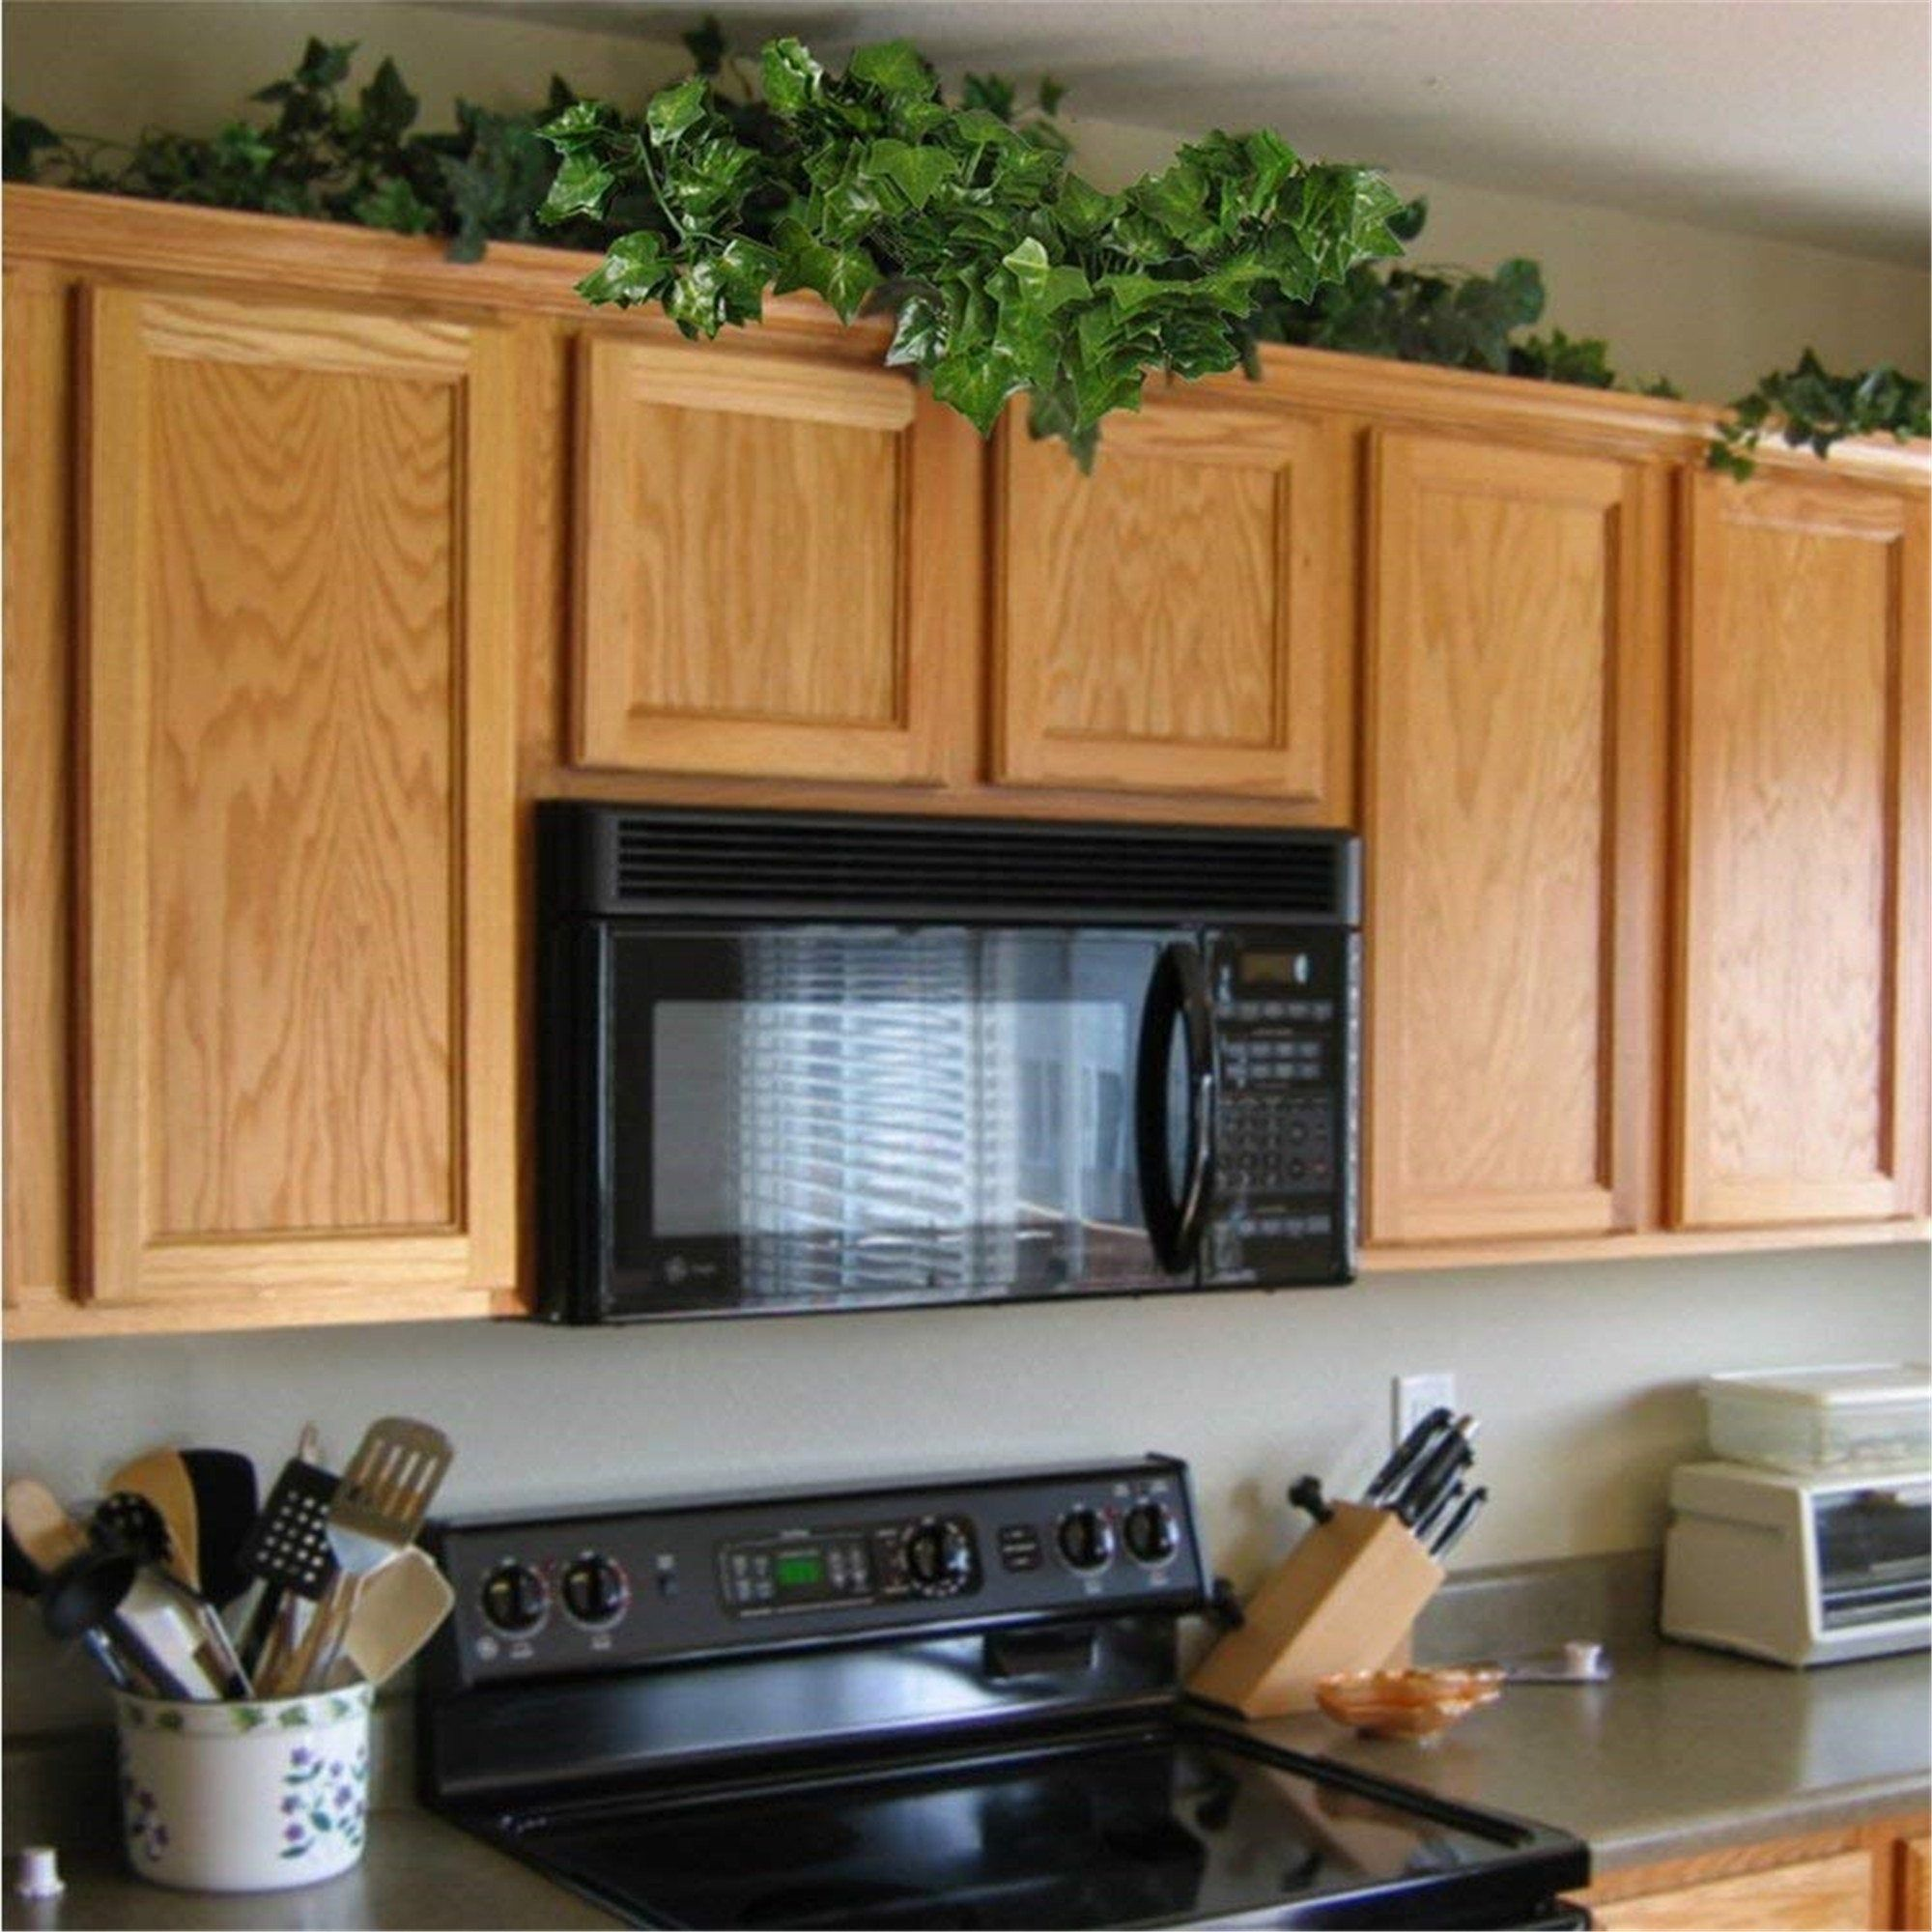 12 X Artificial Plants Of Vine False Flowers Ivy Hanging Etsy In 2021 Above Kitchen Cabinets Decorating Above Kitchen Cabinets Kitchen Cabinets Decor Kitchen plants top cabinets